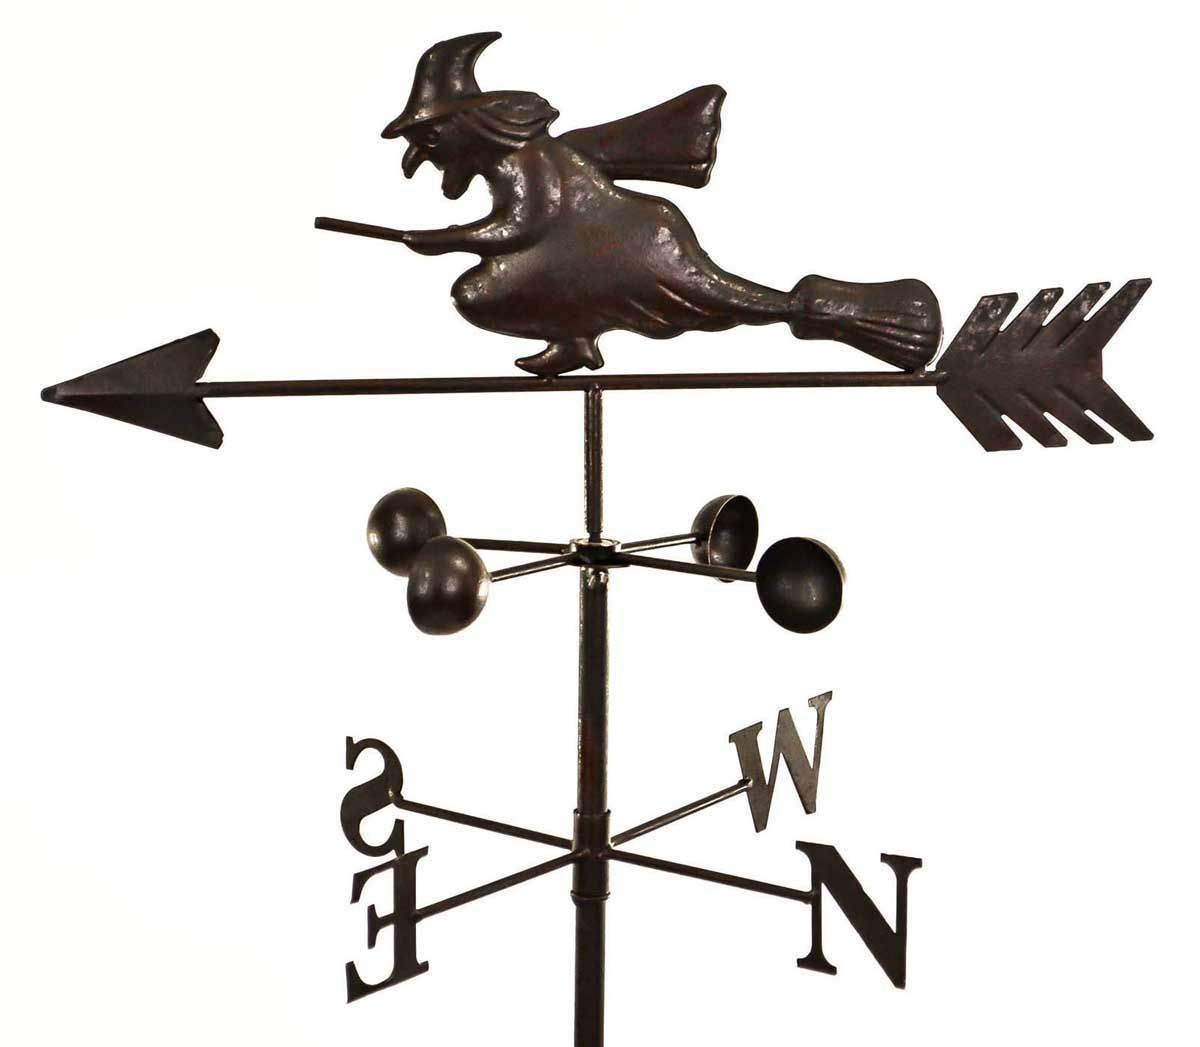 kitchen cupboard gadgets countertop decor dark metal witch wind weathervane weather vane garden ...